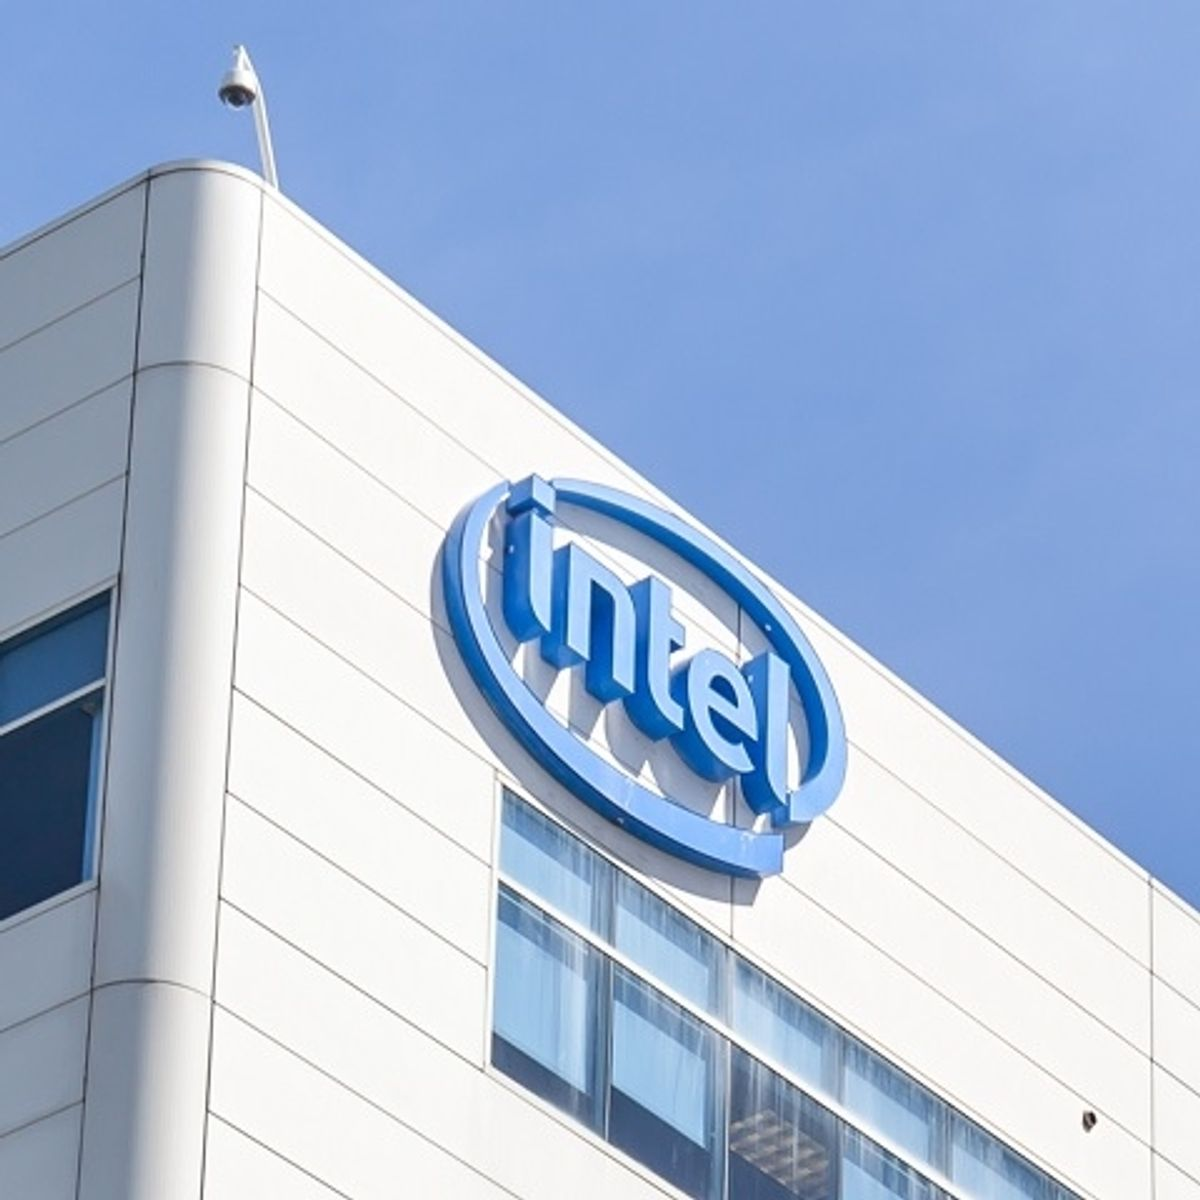 Intel's leaked product roadmap shows no signs of 10nm